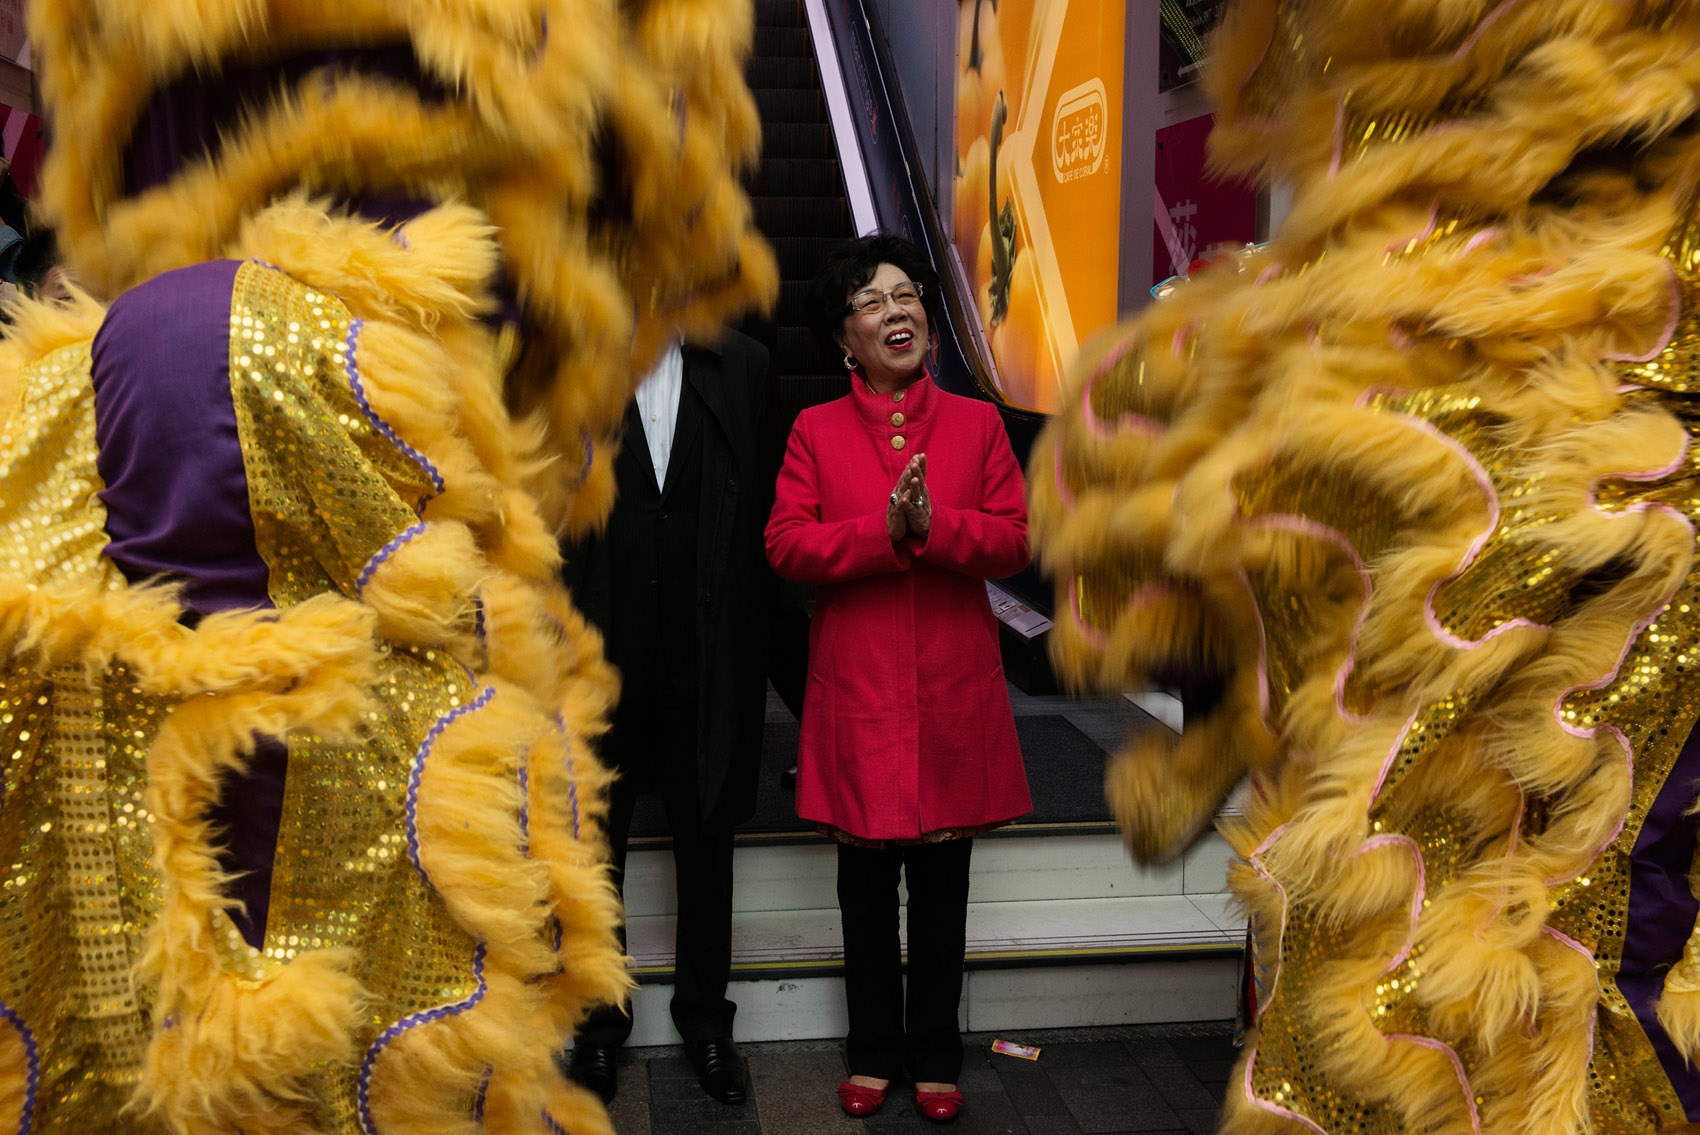 """Mrs Lam Wai Lung, Chairperson of the Incorporated Owners of the Chungking Mansions cheering at acrobats performing the """"good luck"""" lion dance, part of the Chinese New Year celebrations. Mrs Lam arrived in Hong Kong from Fujian province in Mainland China in 1979. After various factory jobs she set up a guest house in the Chungking Mansions. As Chairperson of the Mansions owners association she lead efforts to improve the business environment, including reduction of fire hazards, improvement of security through the installation of a network of CCTV cameras, building renovation and upgrade of the facilities such as the elevators..Some business owners complain the the association favors Chinese owners over South Indians."""